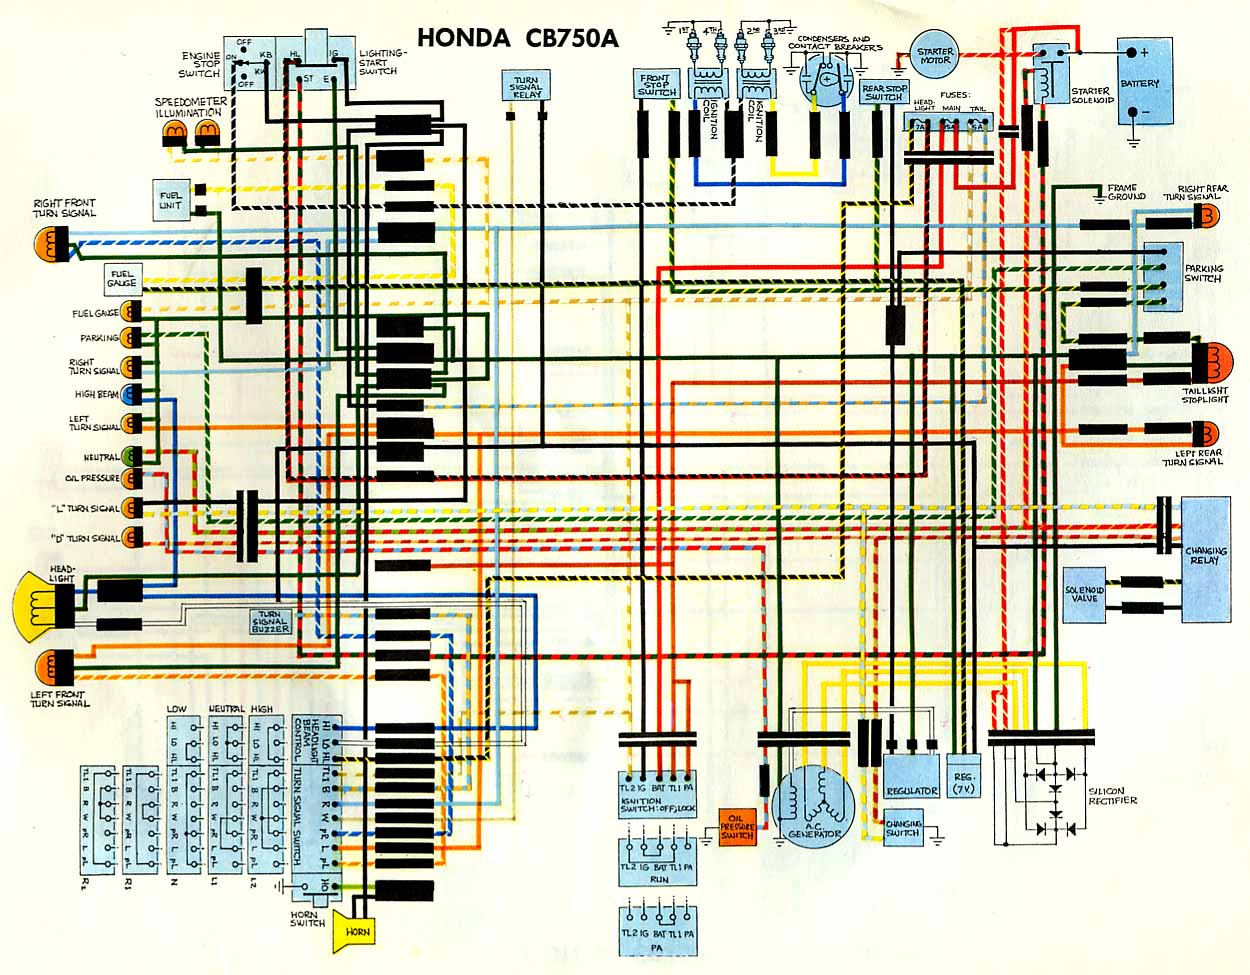 1980 Cb750 Wiring Diagram - 16.11.asyaunited.de • on cx500 turn signals, 2012 honda cr-v wire diagram, cx500 speedometer, cx500 headlight, cx500 engine,